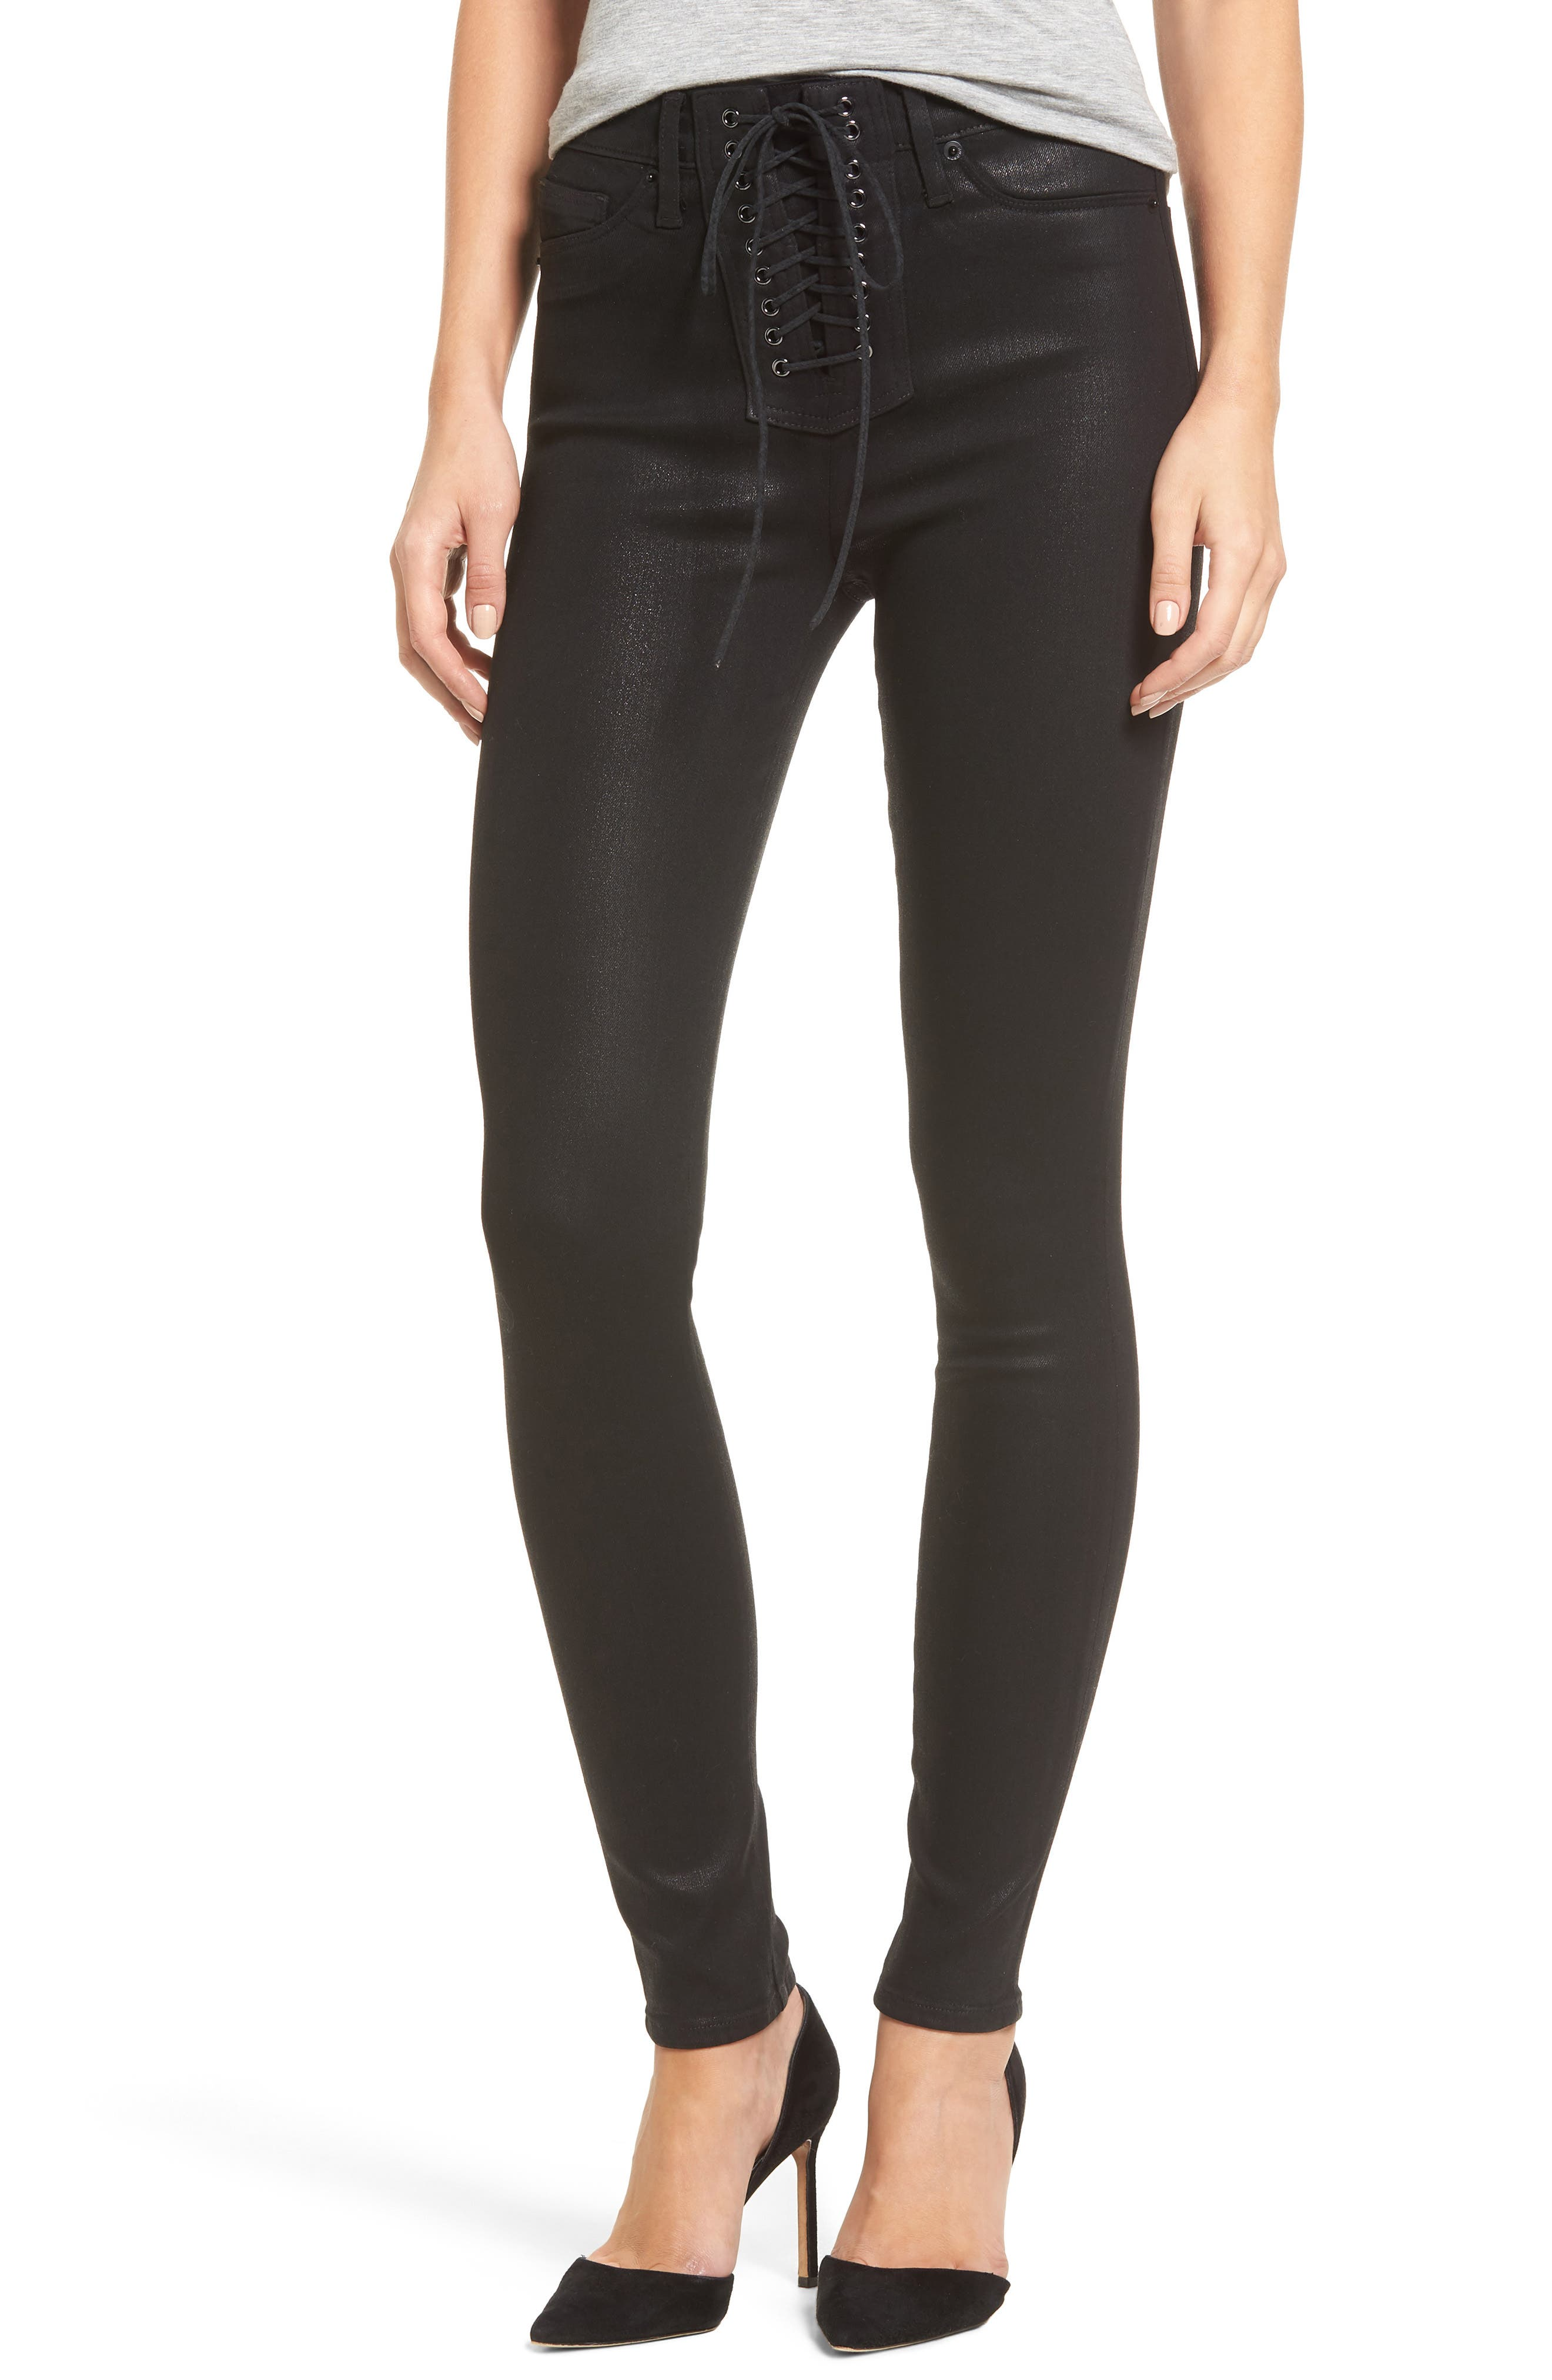 Bullocks High Waist Lace-Up Skinny Jeans,                         Main,                         color, 001